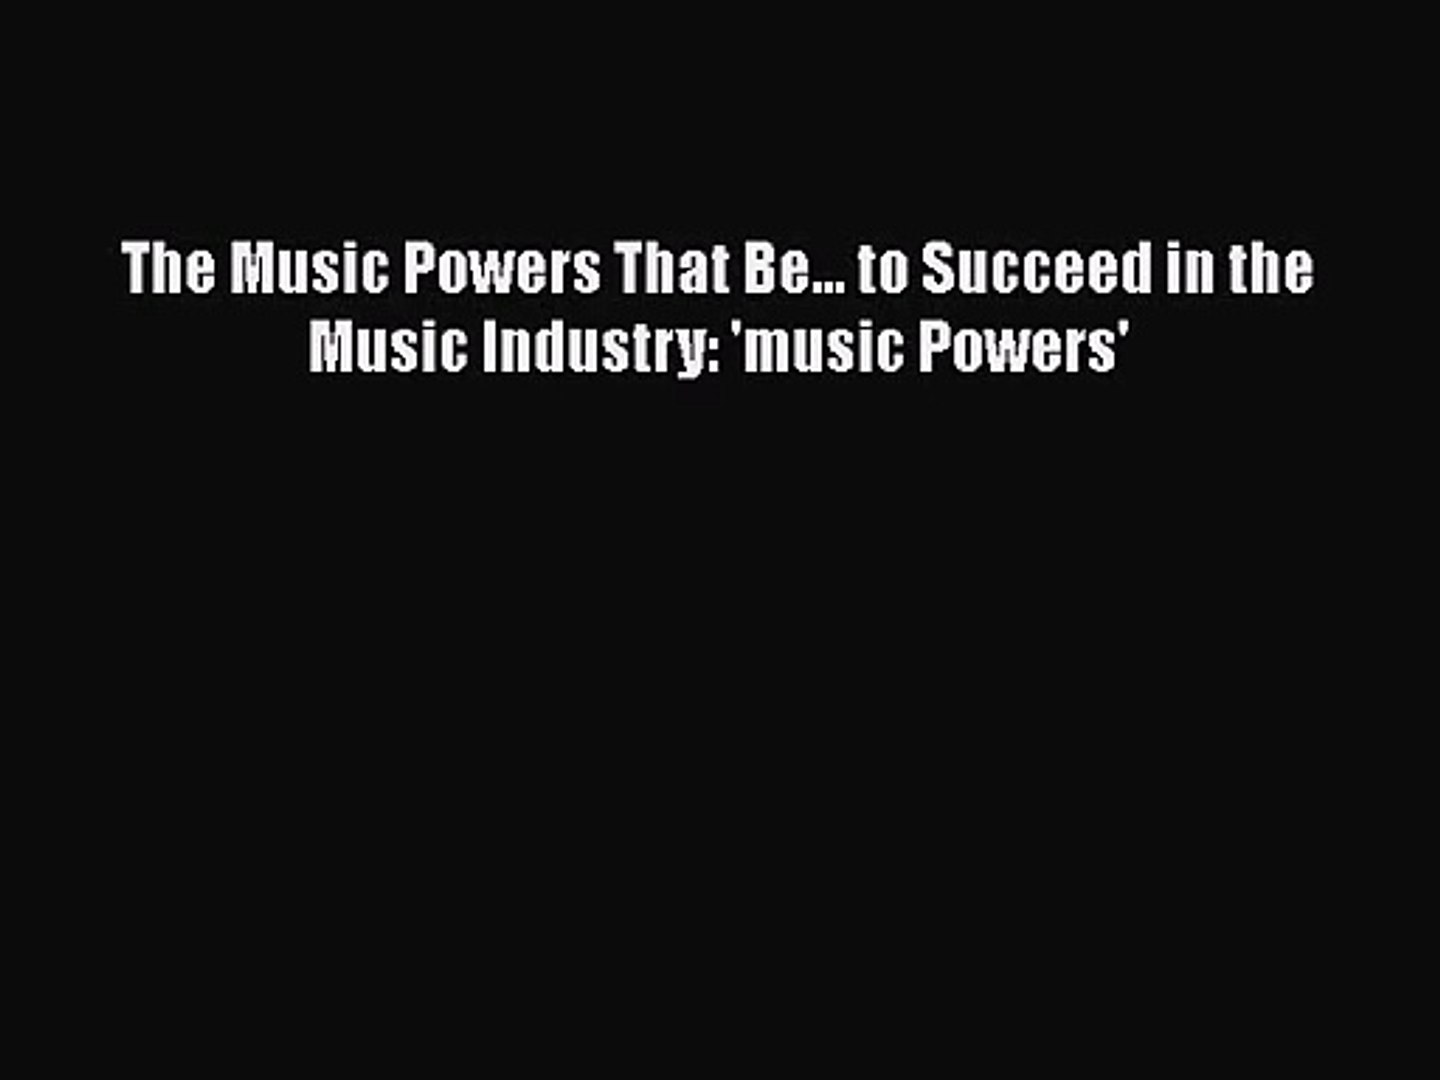 PDF Download The Music Powers That Be... to Succeed in the Music Industry: 'music Powers'